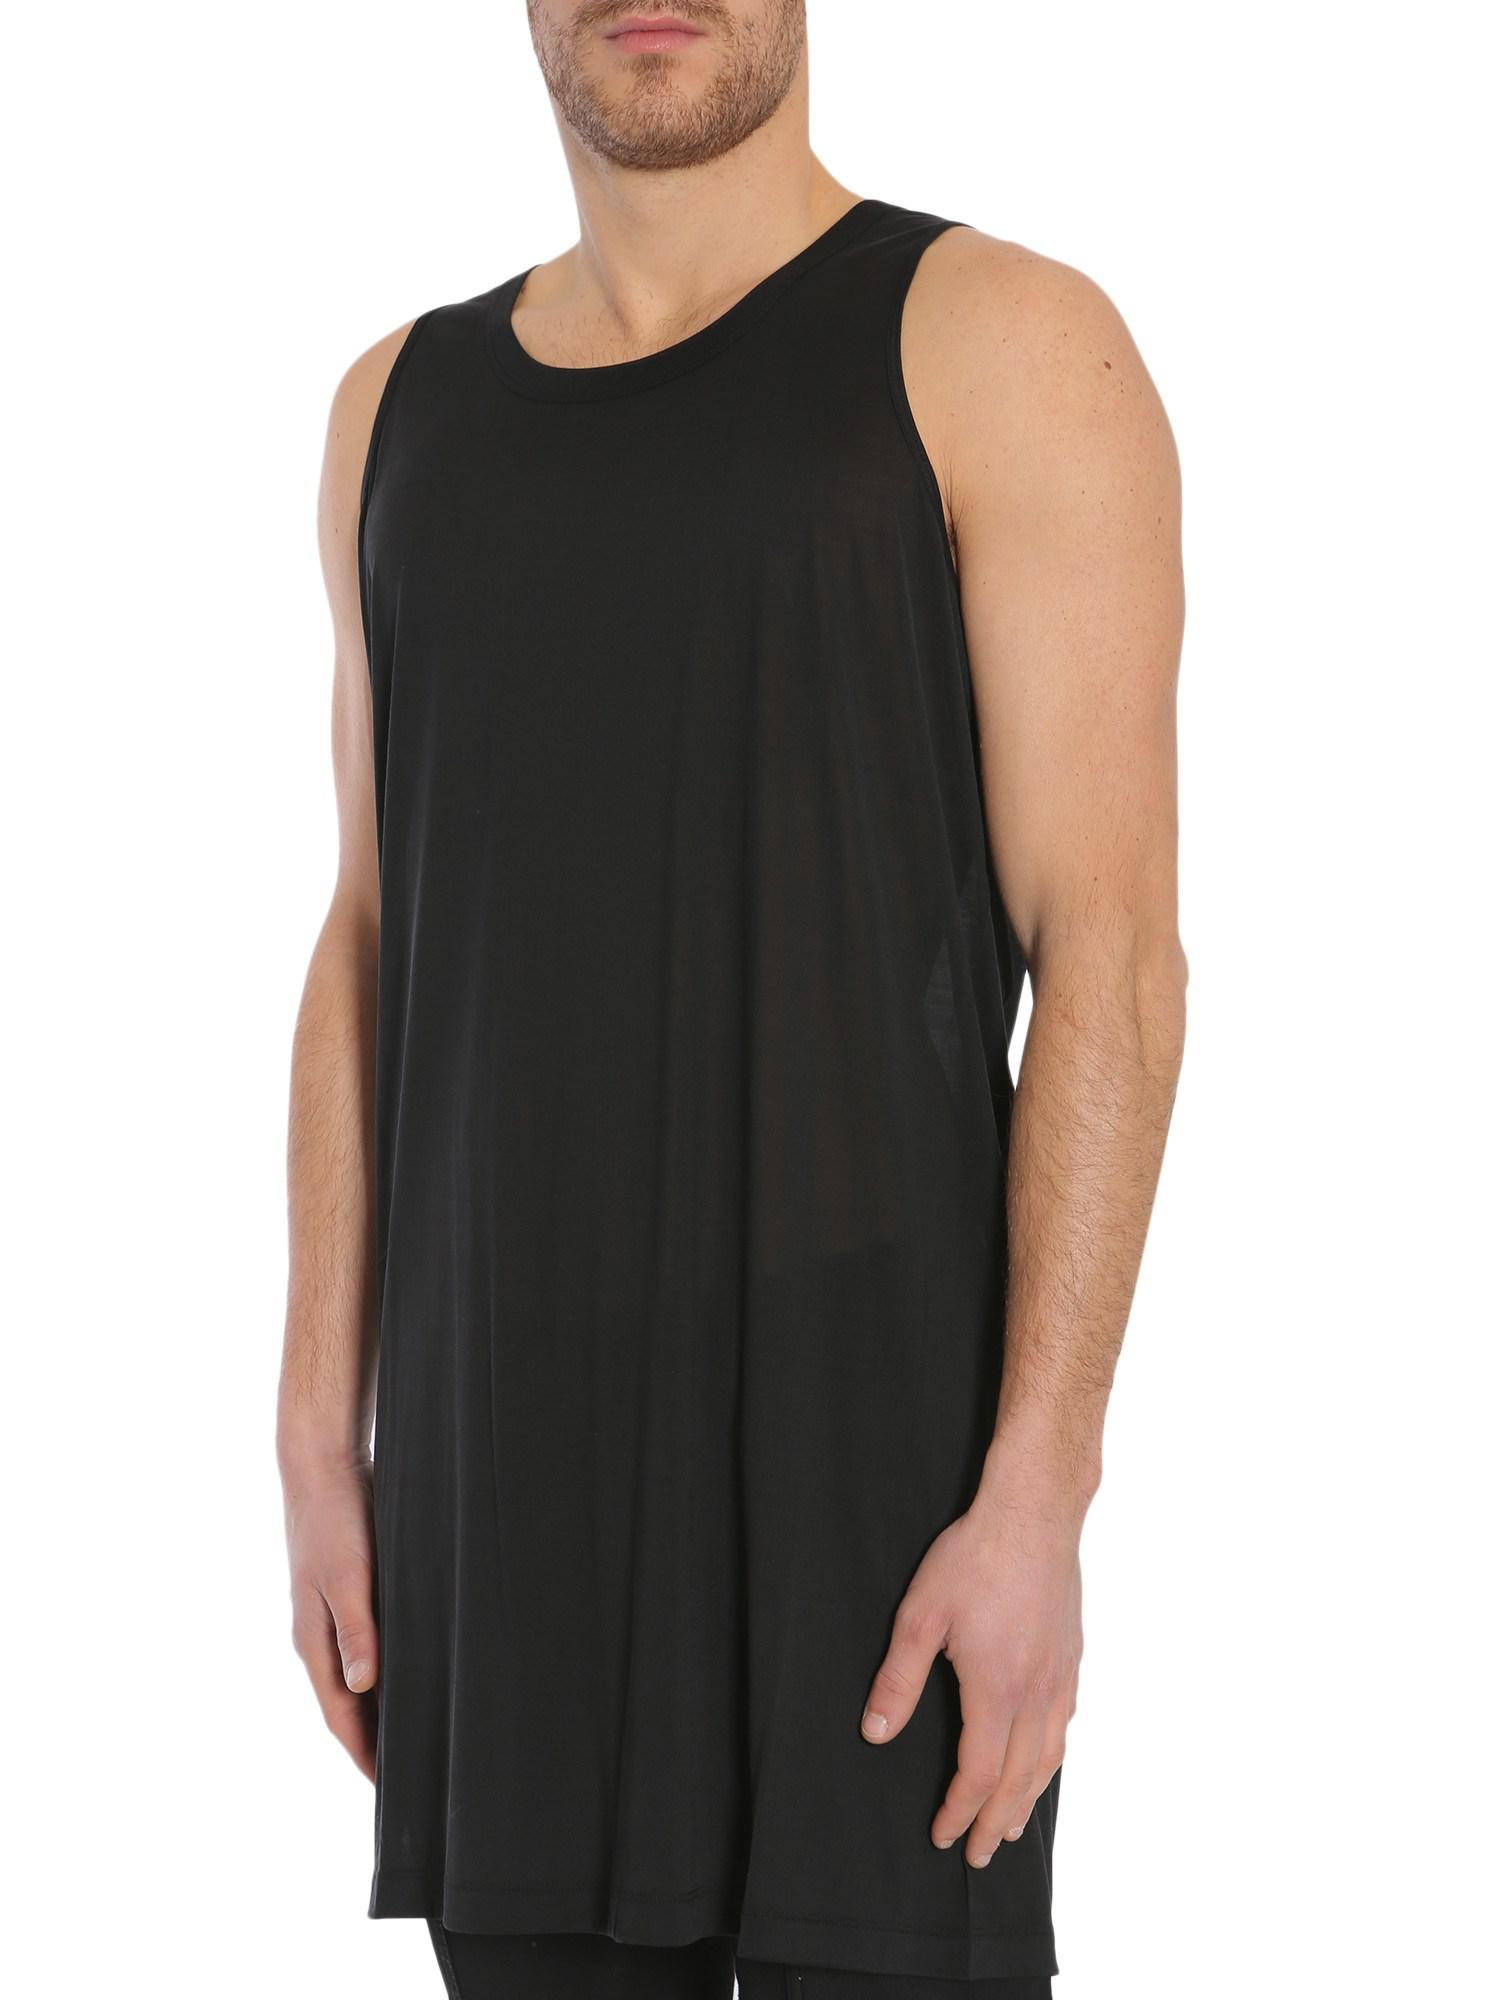 Outlet Visa Payment Sale Original Silk-jersey Tank - Black Rick Owens Clearance Affordable High Quality Sale Online AZuAx